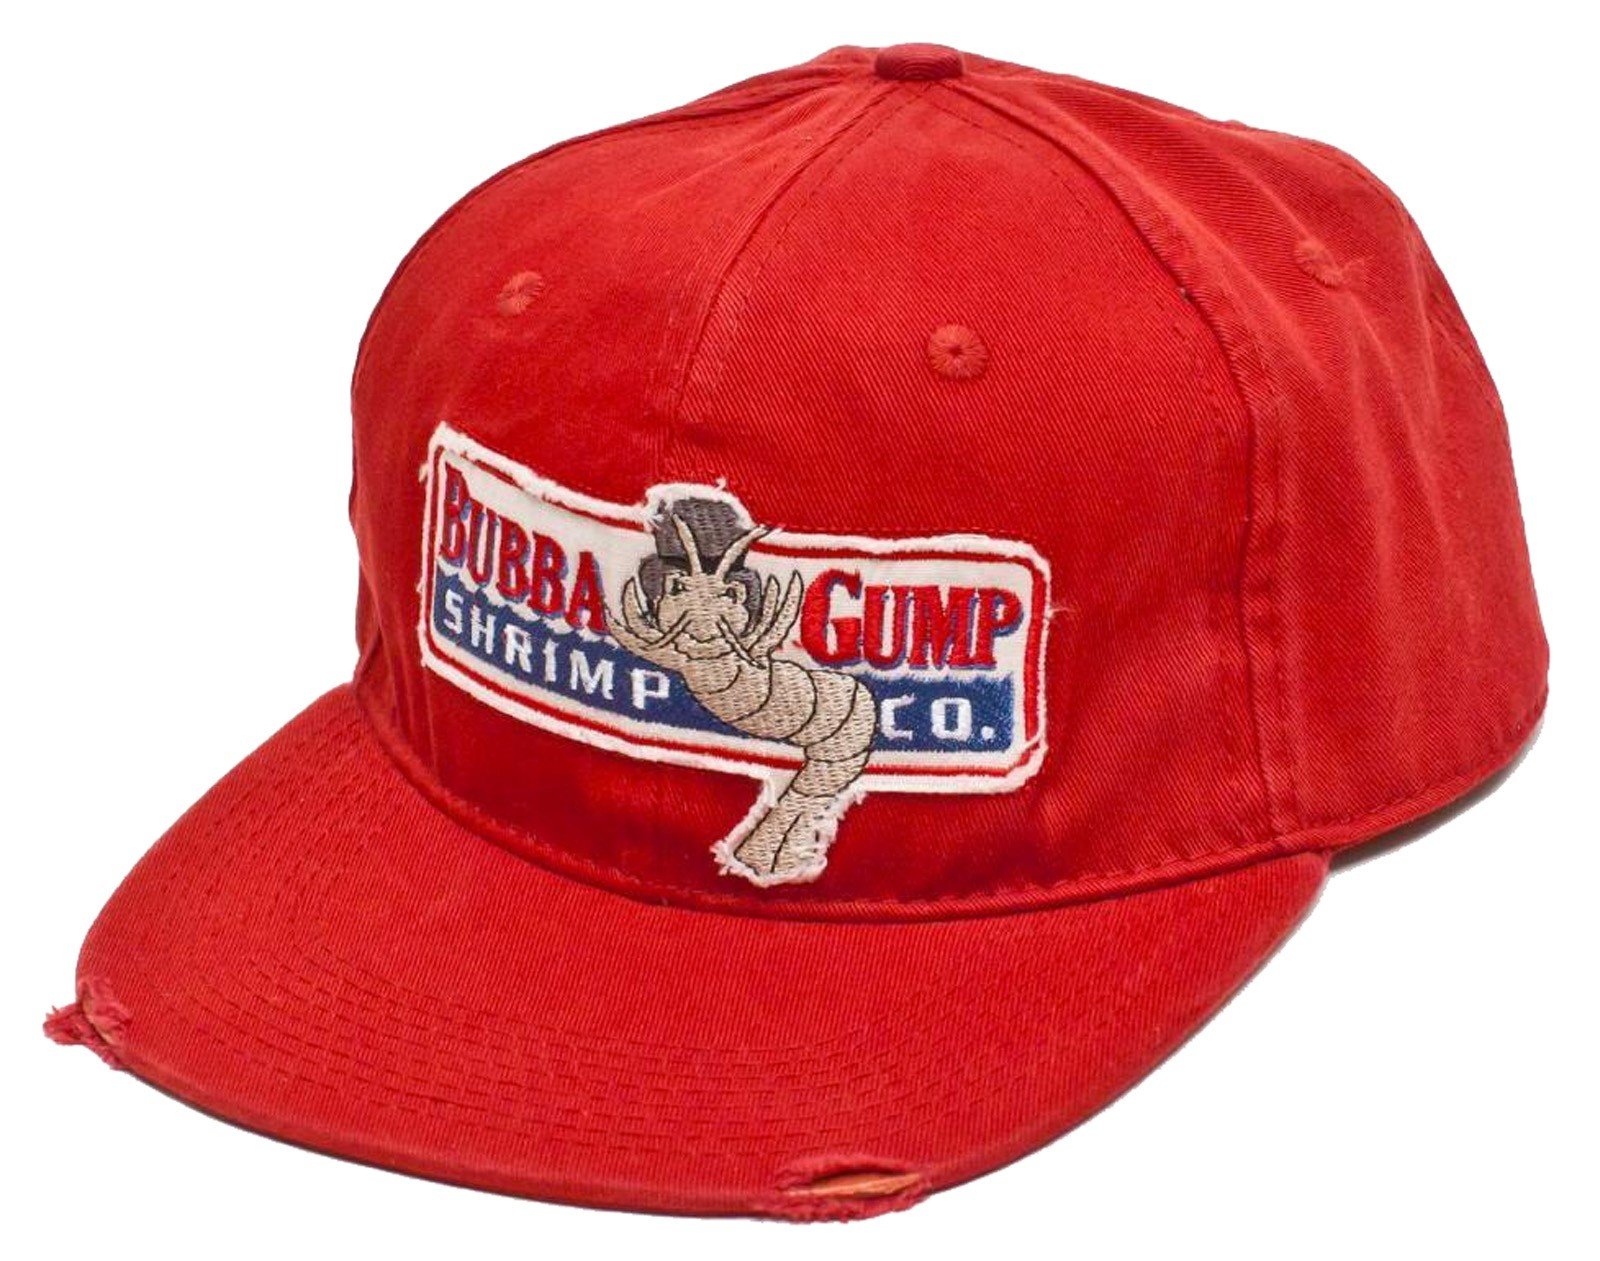 Retro Cap -  Bubba Gump Shrimp Co. Distressed Movie Cap Front